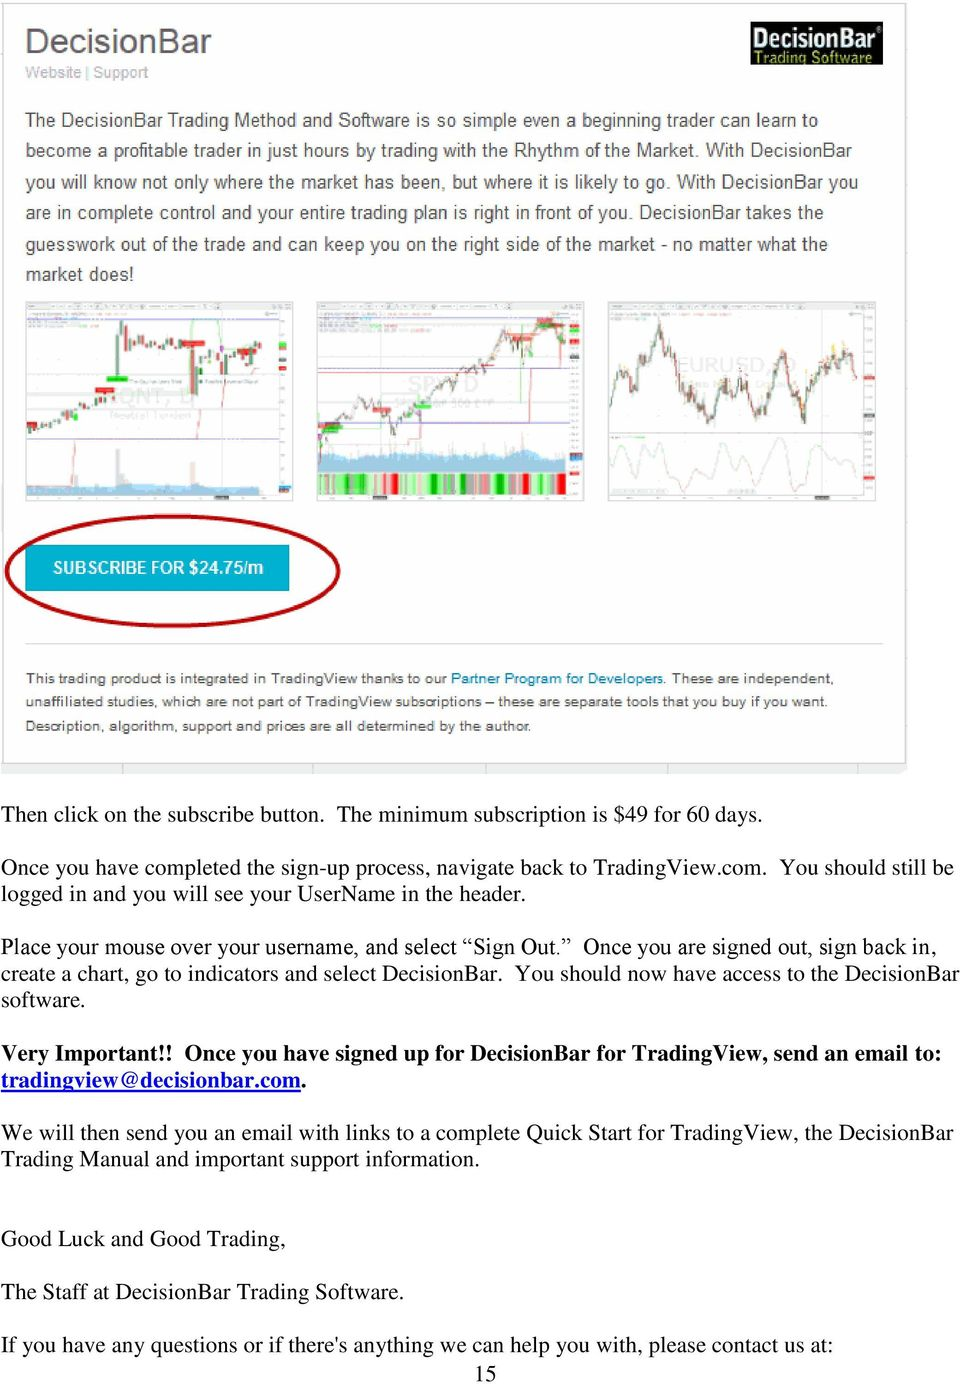 Signing up for DecisionBar for TradingView - PDF